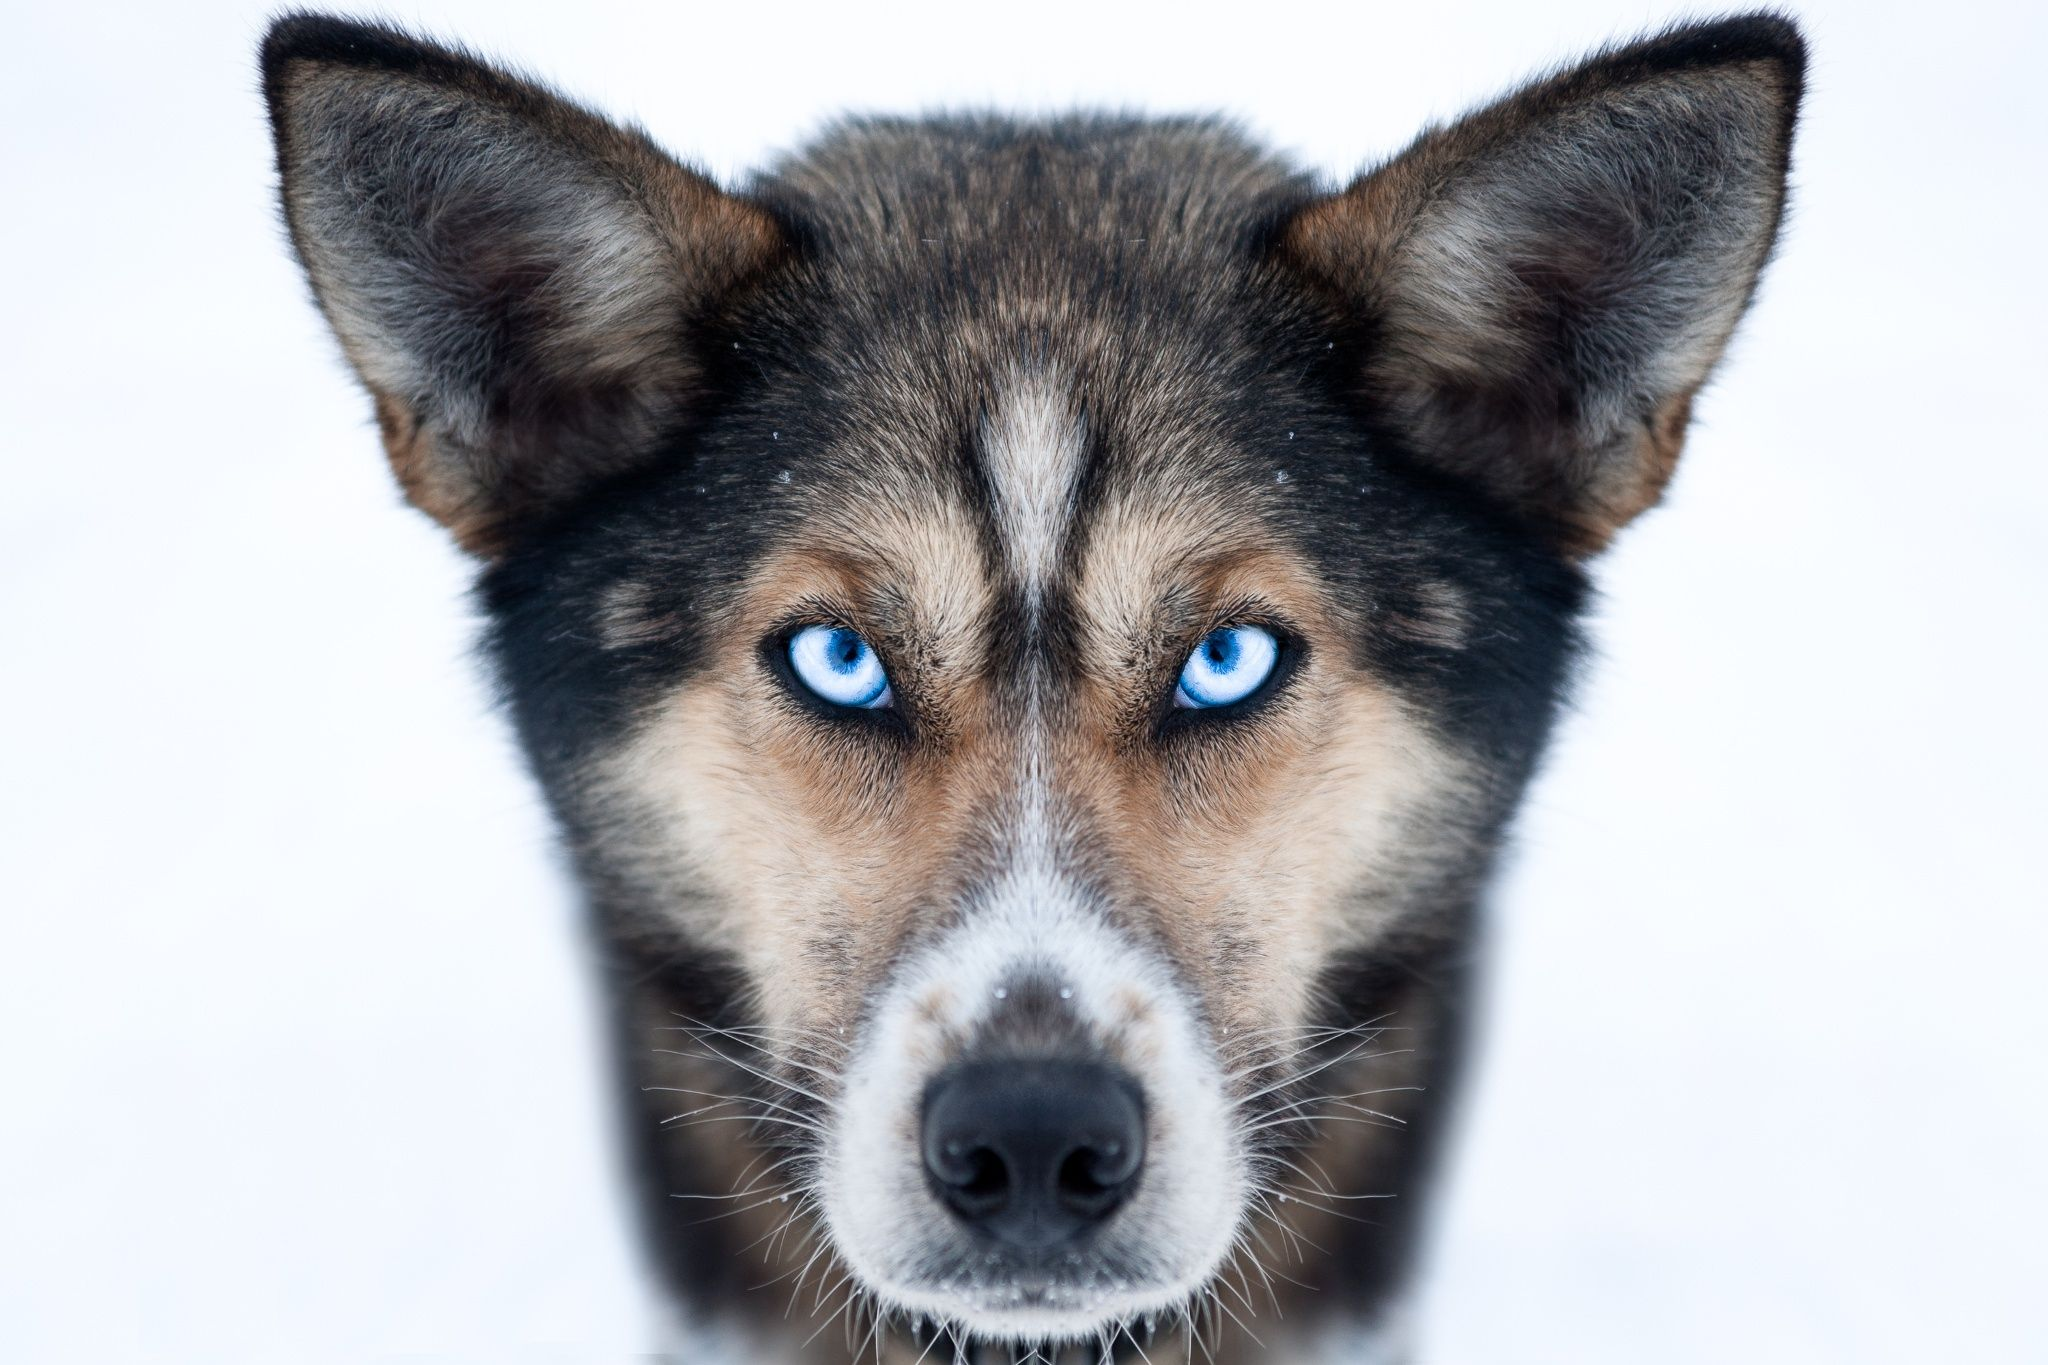 ICE EYES by Jaco Hoffmann on 500px